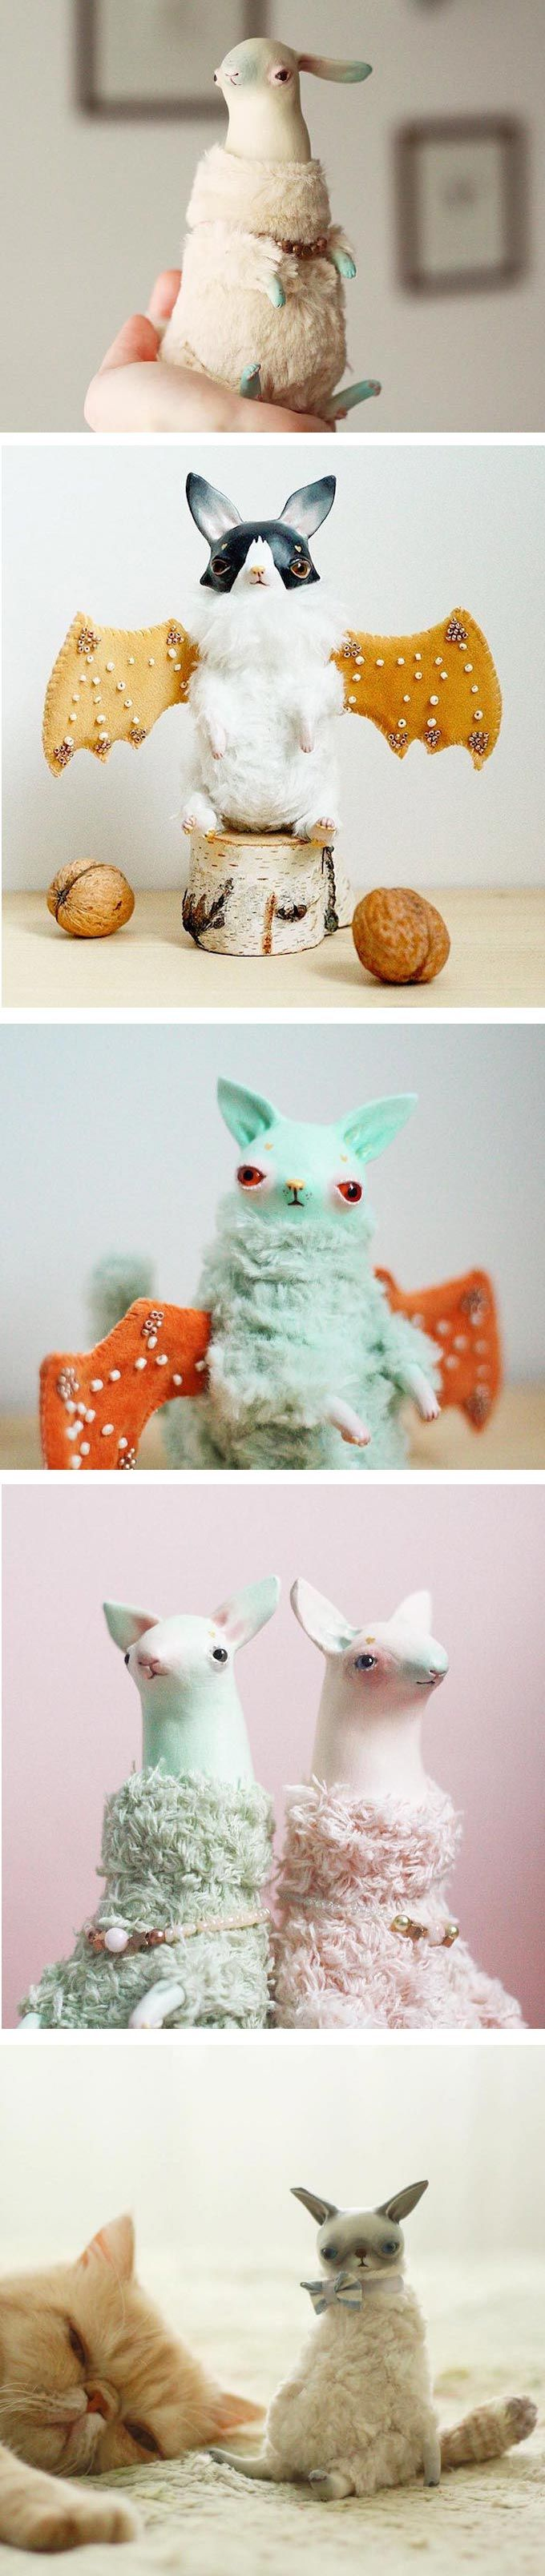 Claymate Creatures is the Etsy shop of Daria Lapto, a doll artist from Ulyanovsk, Russia. They're hybrids or a fantastical reimagining of bats and wolves.